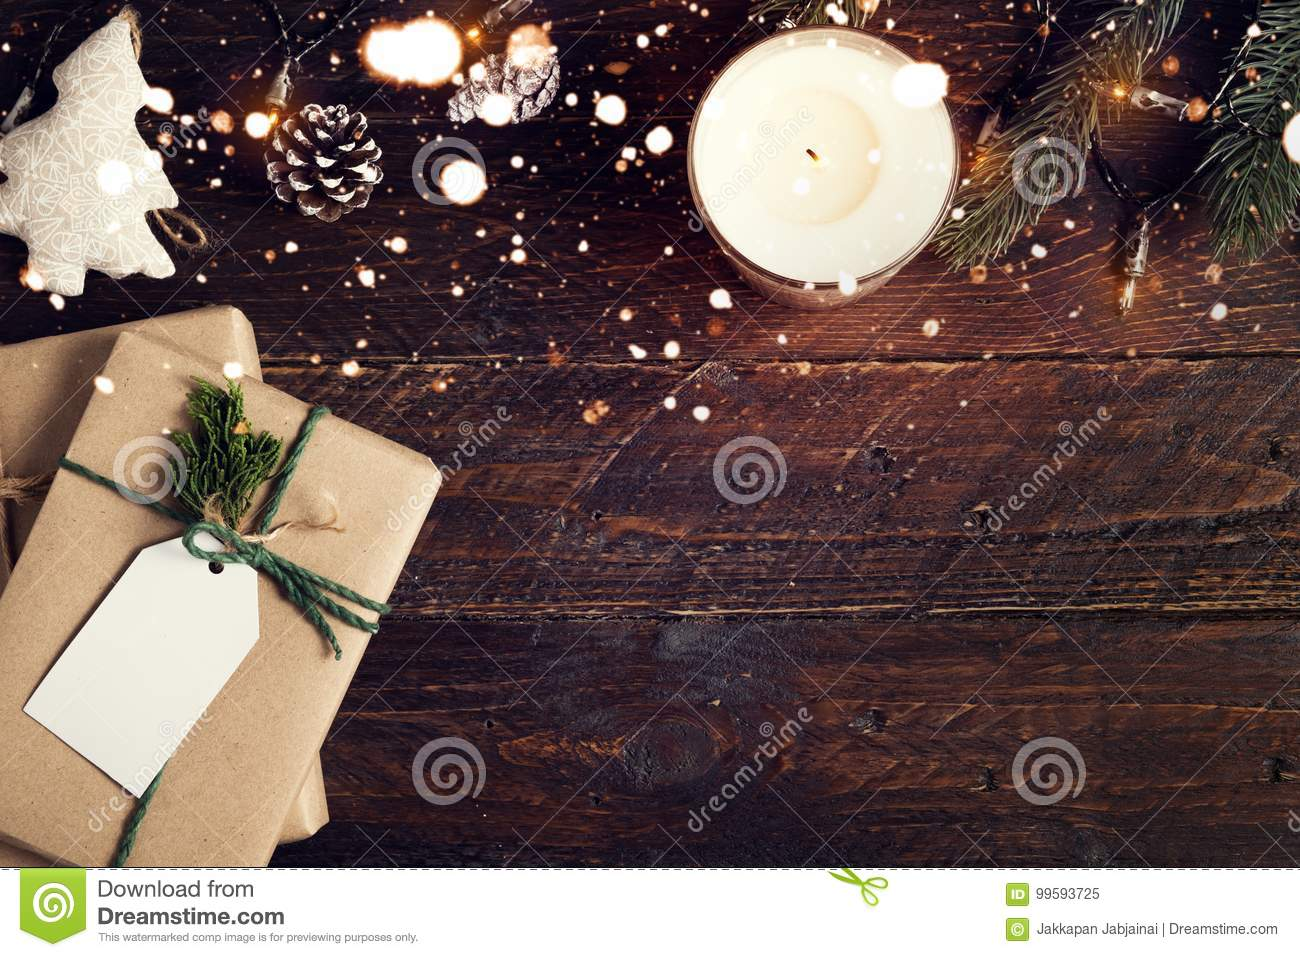 Christmas present gifts box and rustic decoration on vintage wooden background with snowflake.